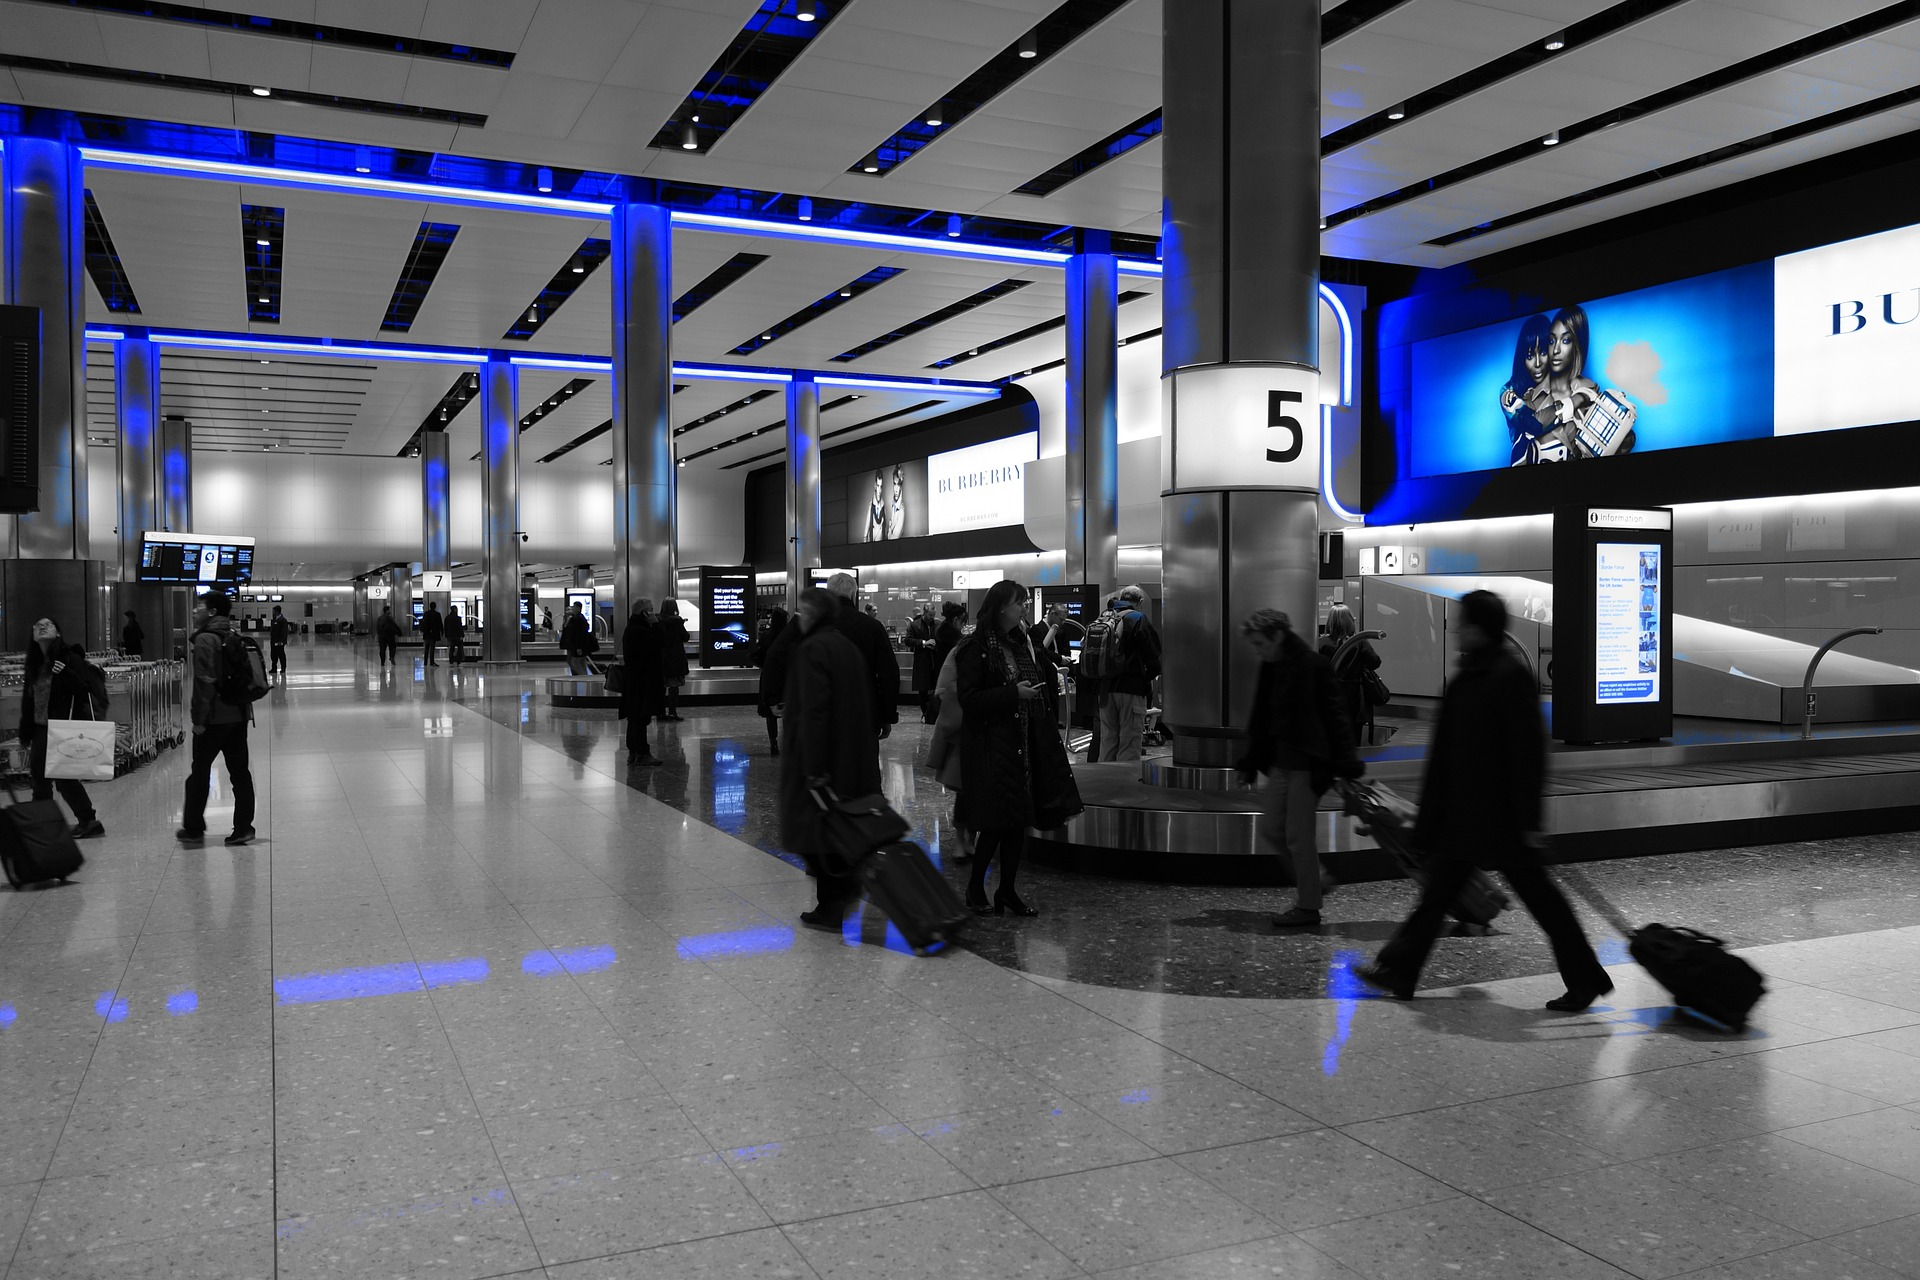 image of luggage carousel at airport